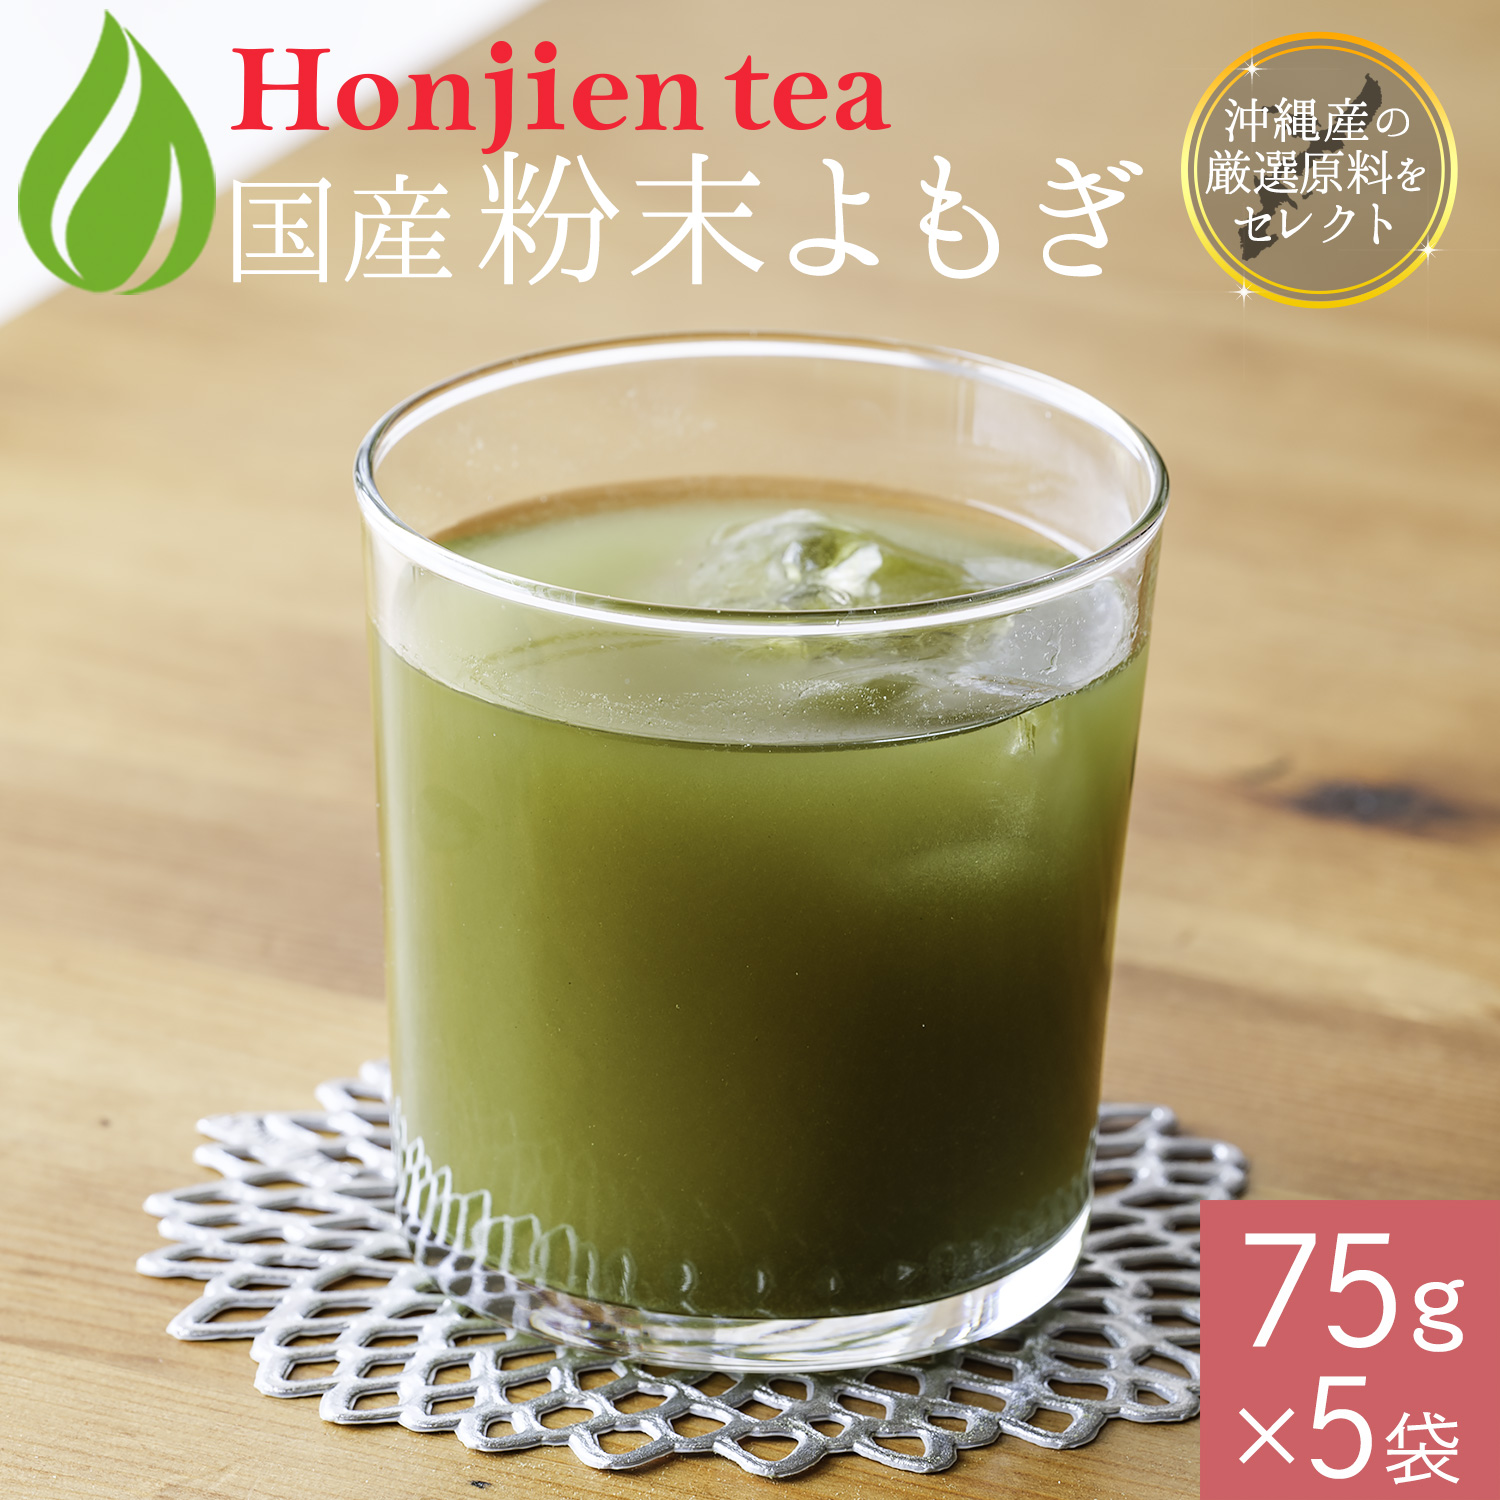 Mugwort powder tea from Japan - 75g x 5 packs - No pesticides during  cultivation period - for poor circulation, contains no caffeine, for moms  and